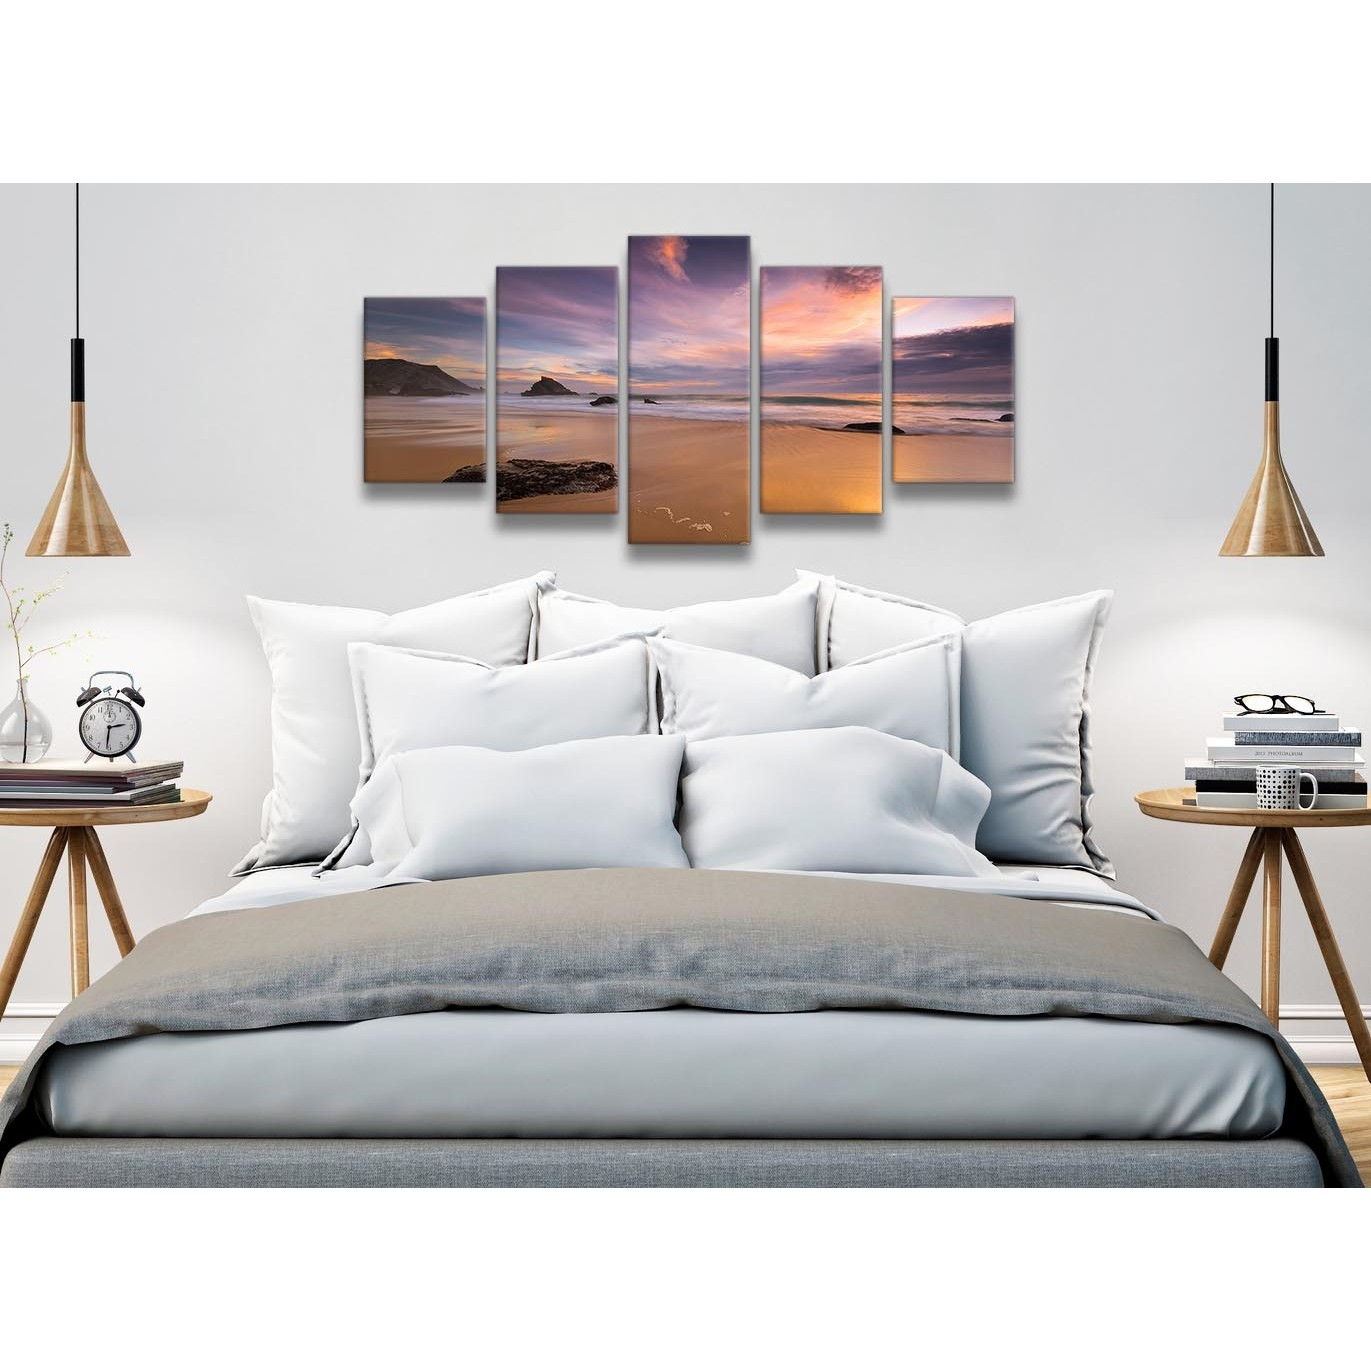 5 Piece Canvas Wall Art Prints – Panoramic Landscape Beach Sunset Pertaining To Newest Panoramic Wall Art (Gallery 15 of 15)